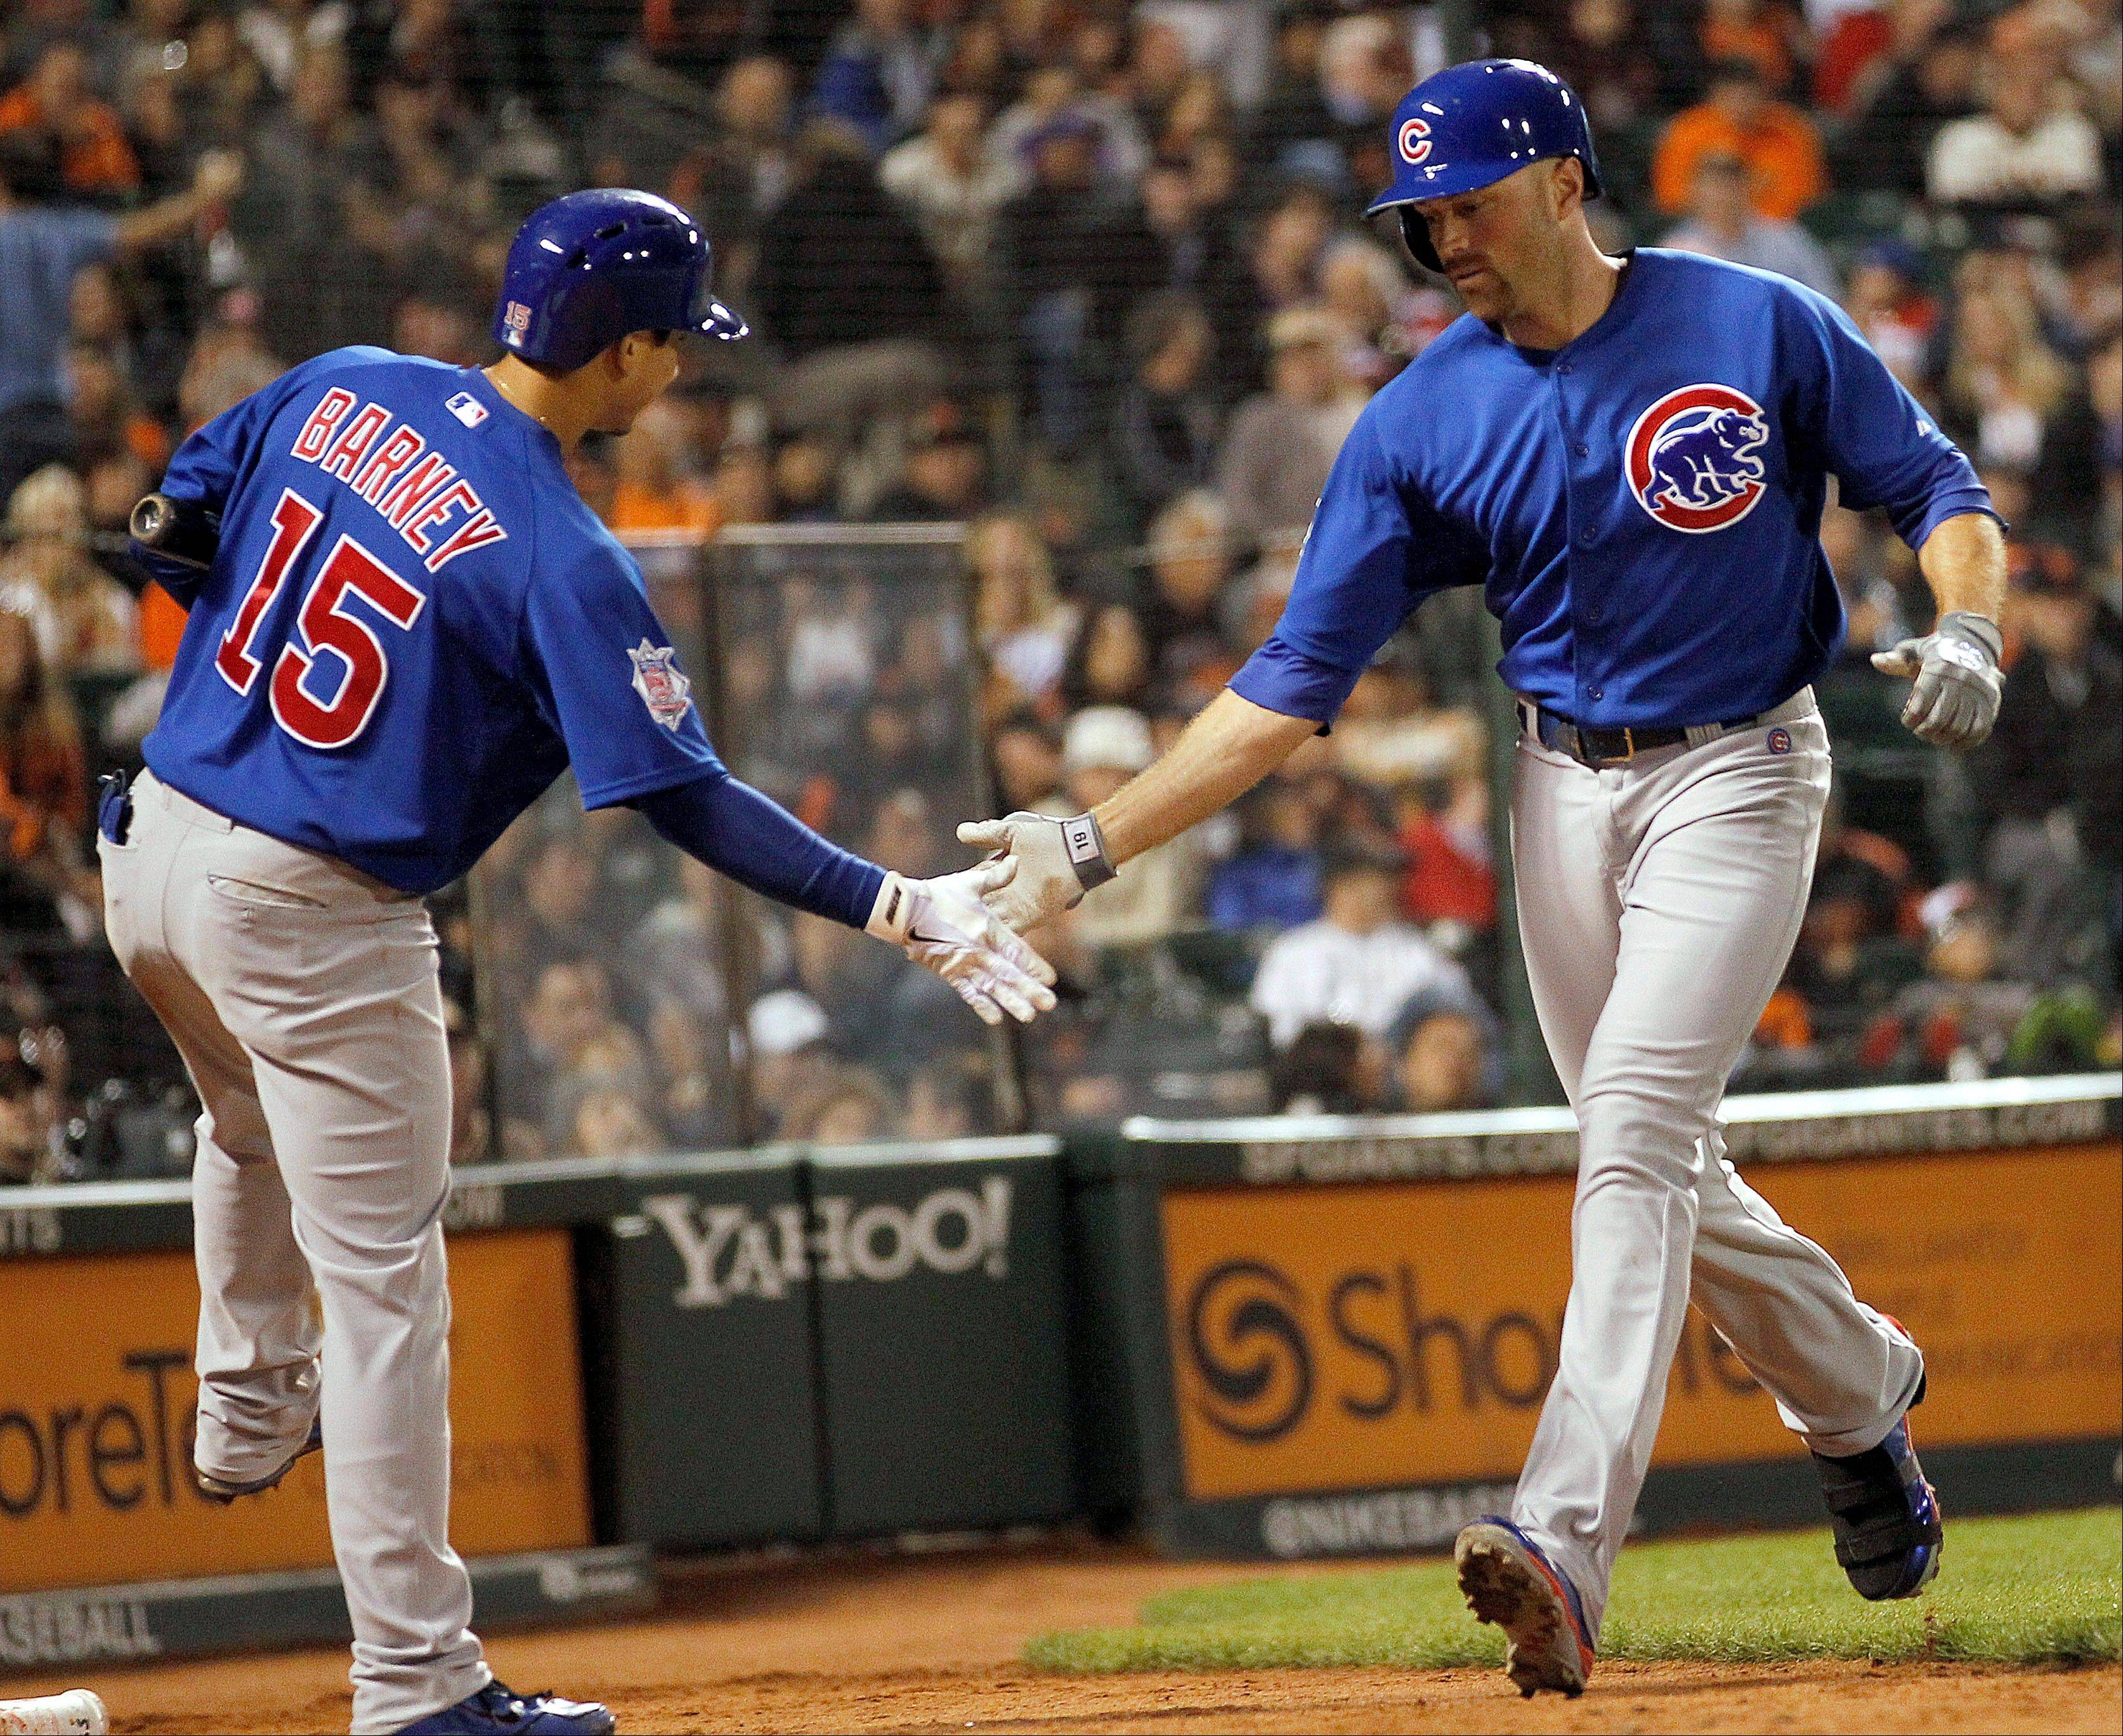 The Cubs' Nate Schierholtz, right, is congratulated by Darwin Barney after hitting a solo home run against Giants relief pitcher Sergio Romo Saturday night in San Francisco.